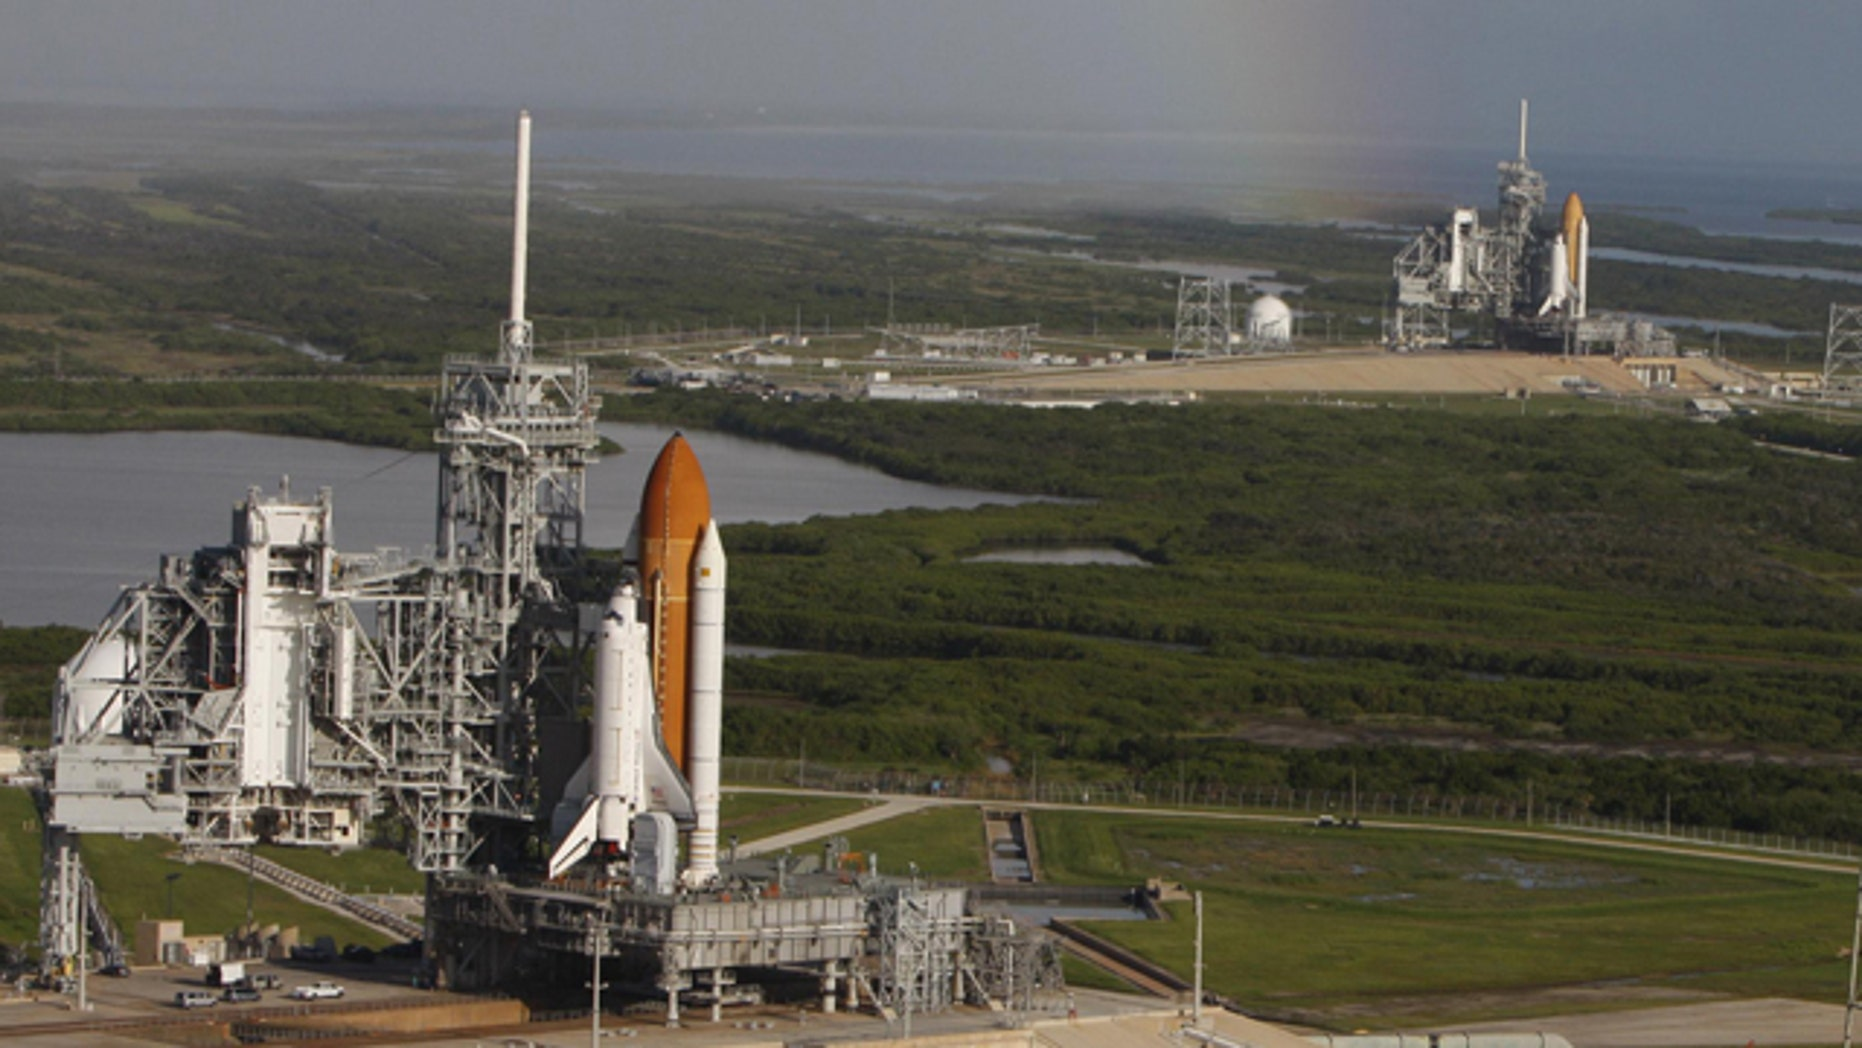 Space shuttle Atlantis (foreground) sits on Launch Pad A and Endeavour on Launch Pad B at NASA's Kennedy Space Center in Florida. Endeavour's final launch is scheduled for April 1.